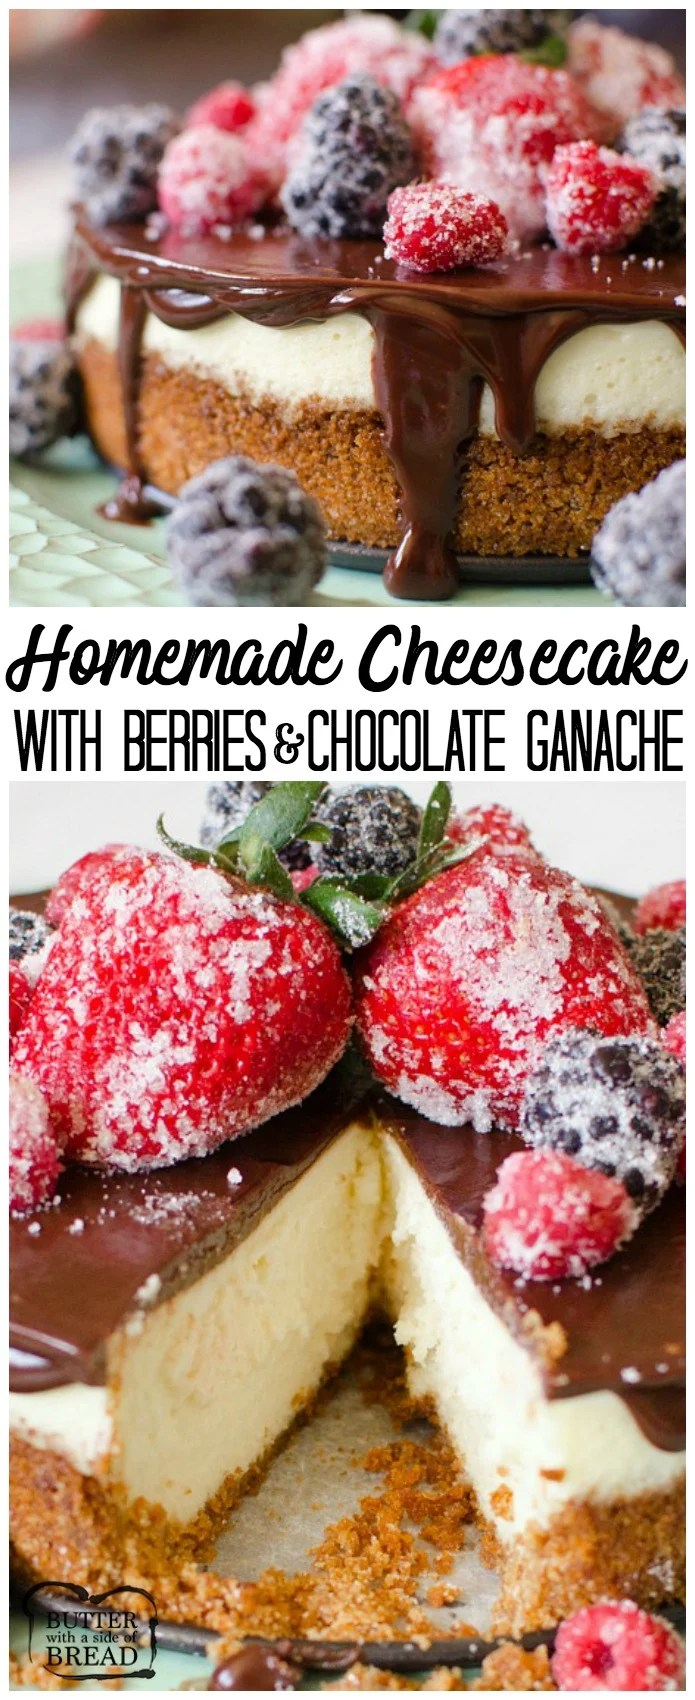 Cheesecake with Berries & Chocolate Ganache is a creamy, homemade, six-inch cheesecake topped with a rich chocolate ganache. The Cheesecake is garnished with sugared berries that give this classic dessert a bright, fresh flavor.#Homemade #Cheesecake #recipe from Butter With A Side of Bread #dessert #berries #ganache #food #delicious #howtomakecheesecake